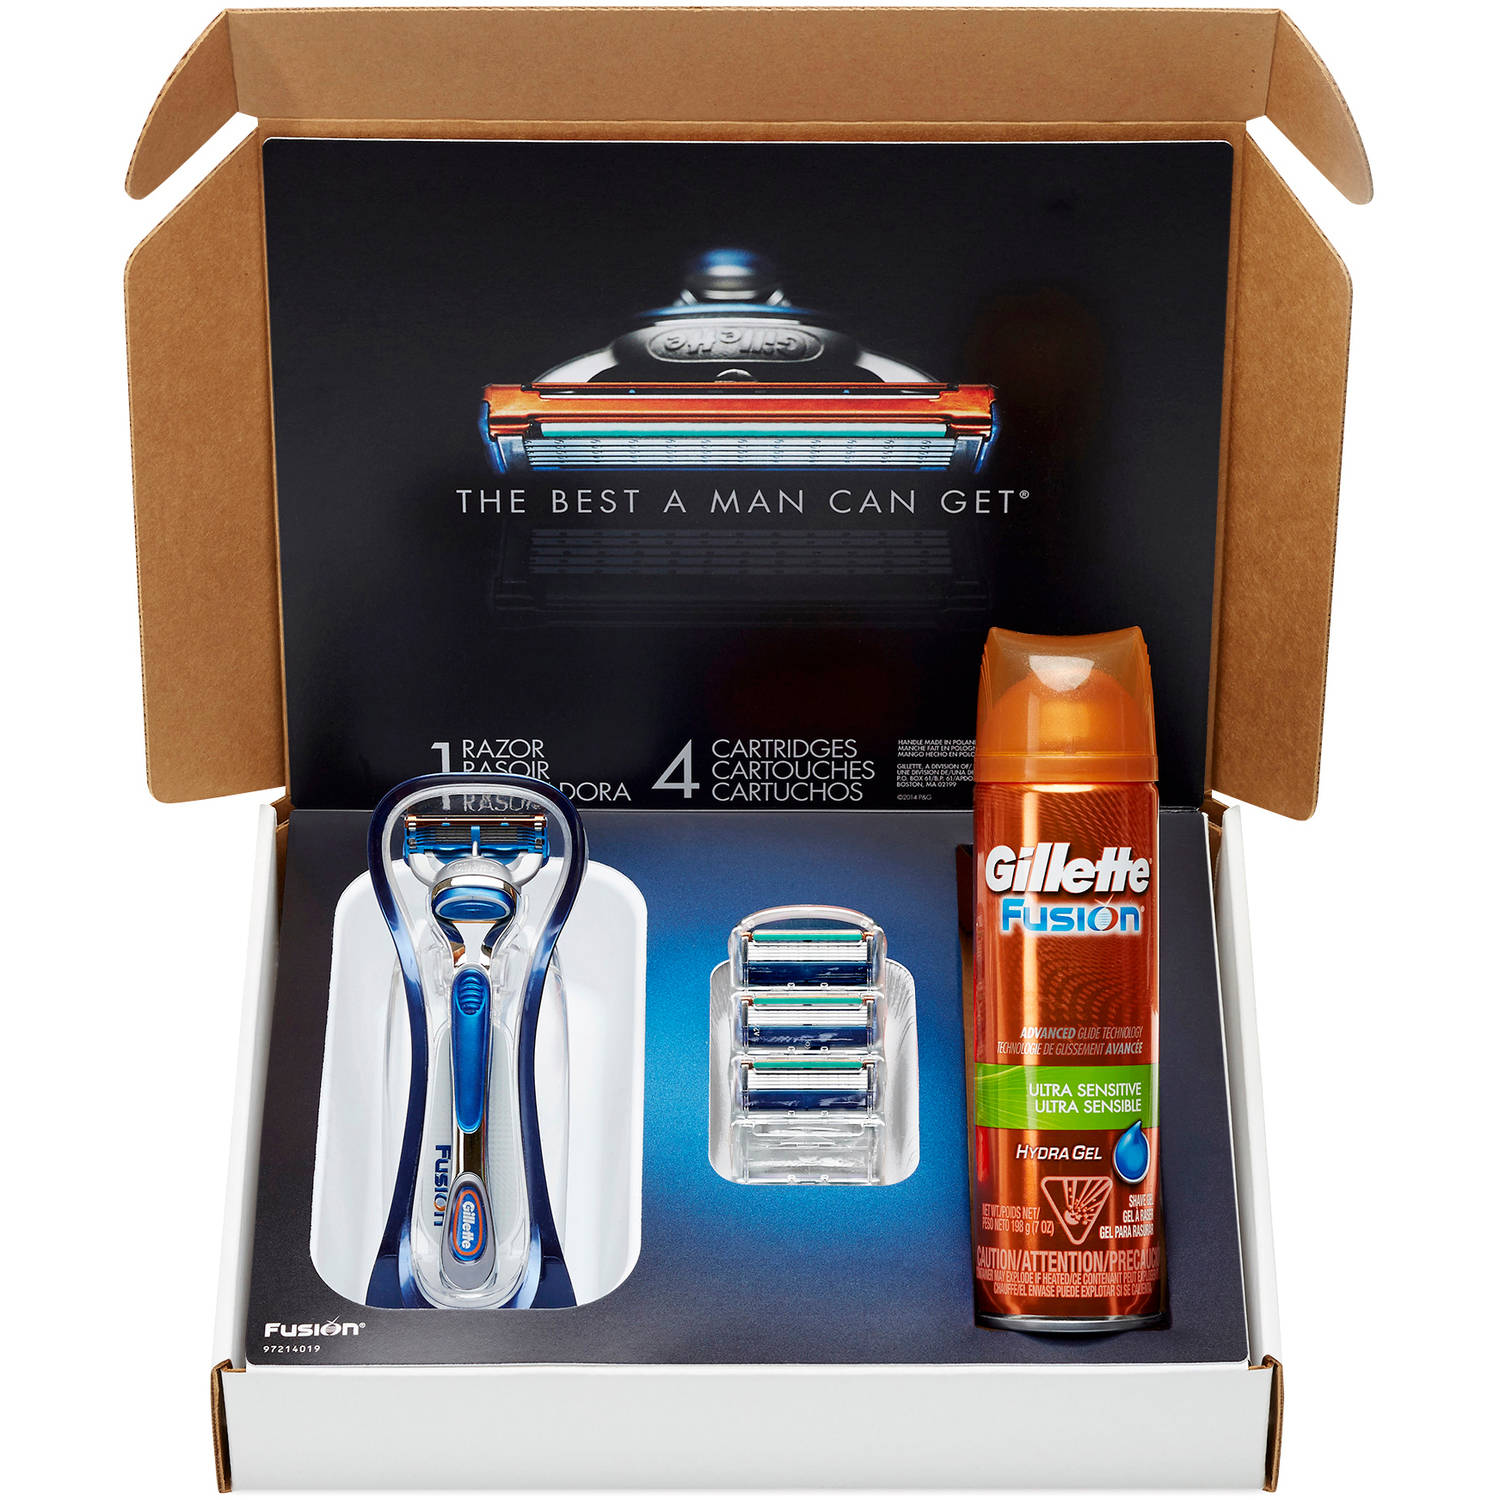 Gillette Fusion Bundle with Manual Razor Blades, Handle, and Shave Gel, 6 pc